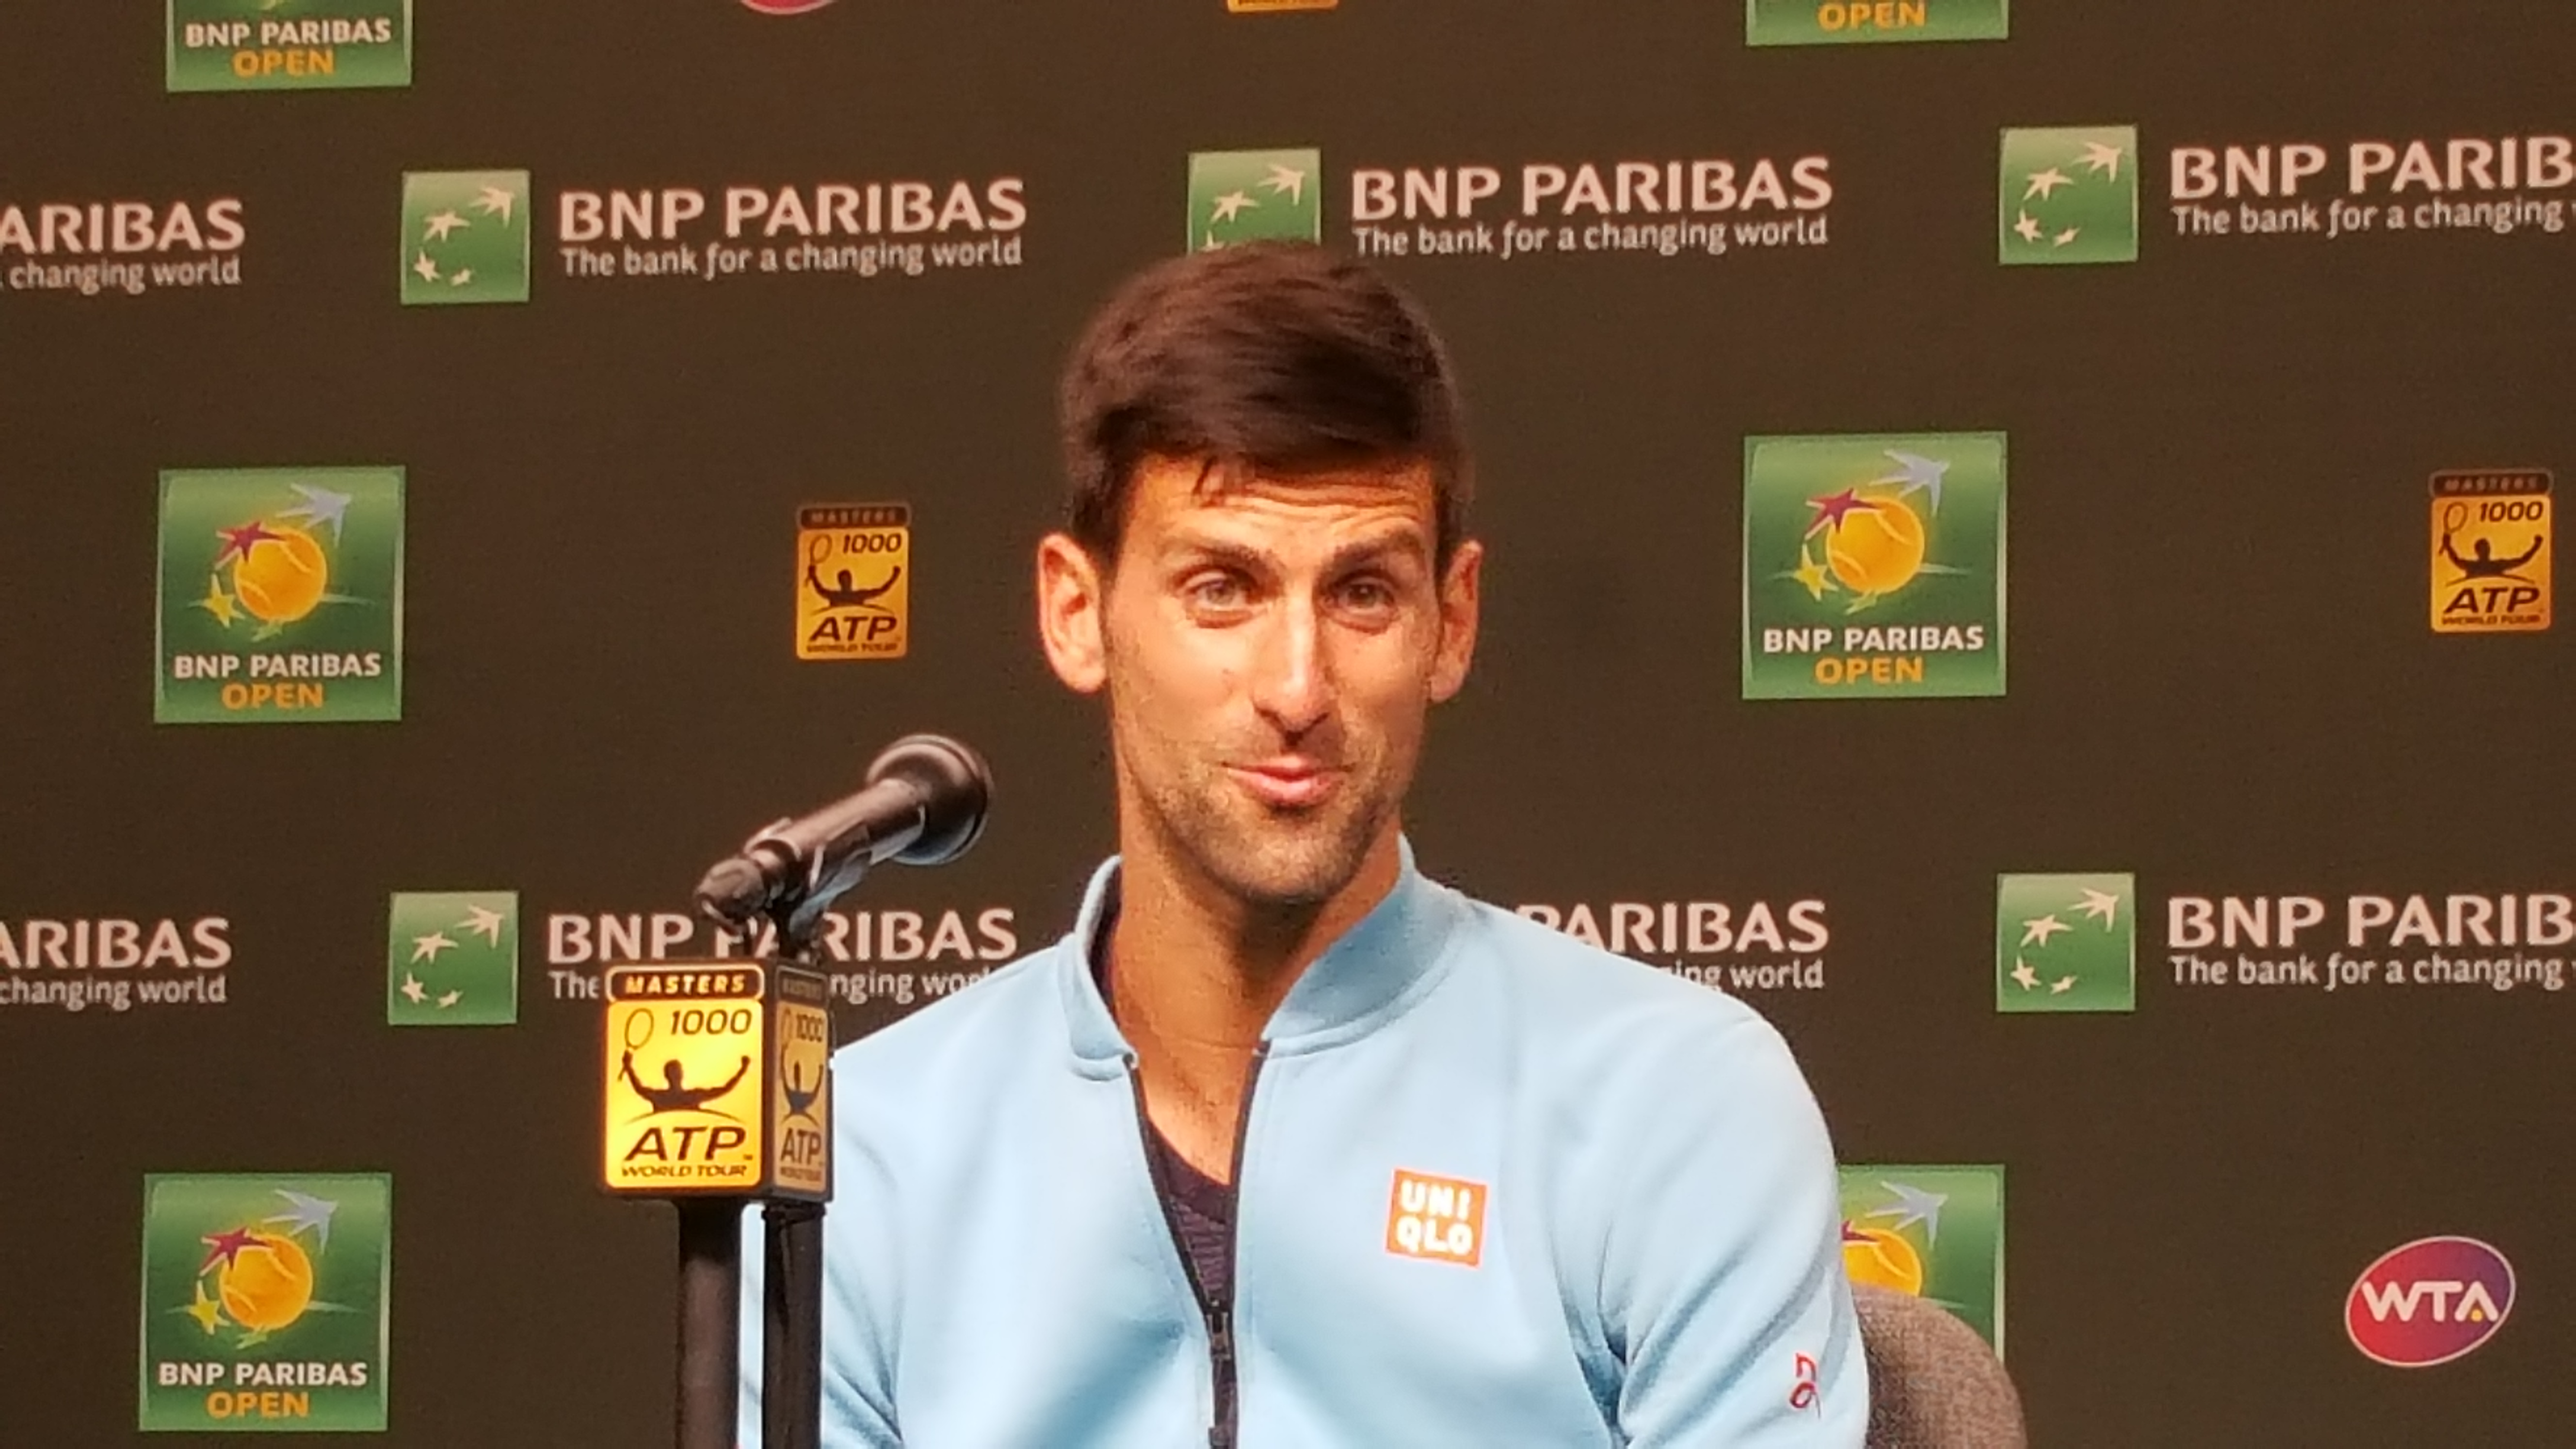 3-12-17 Novak Djokovic